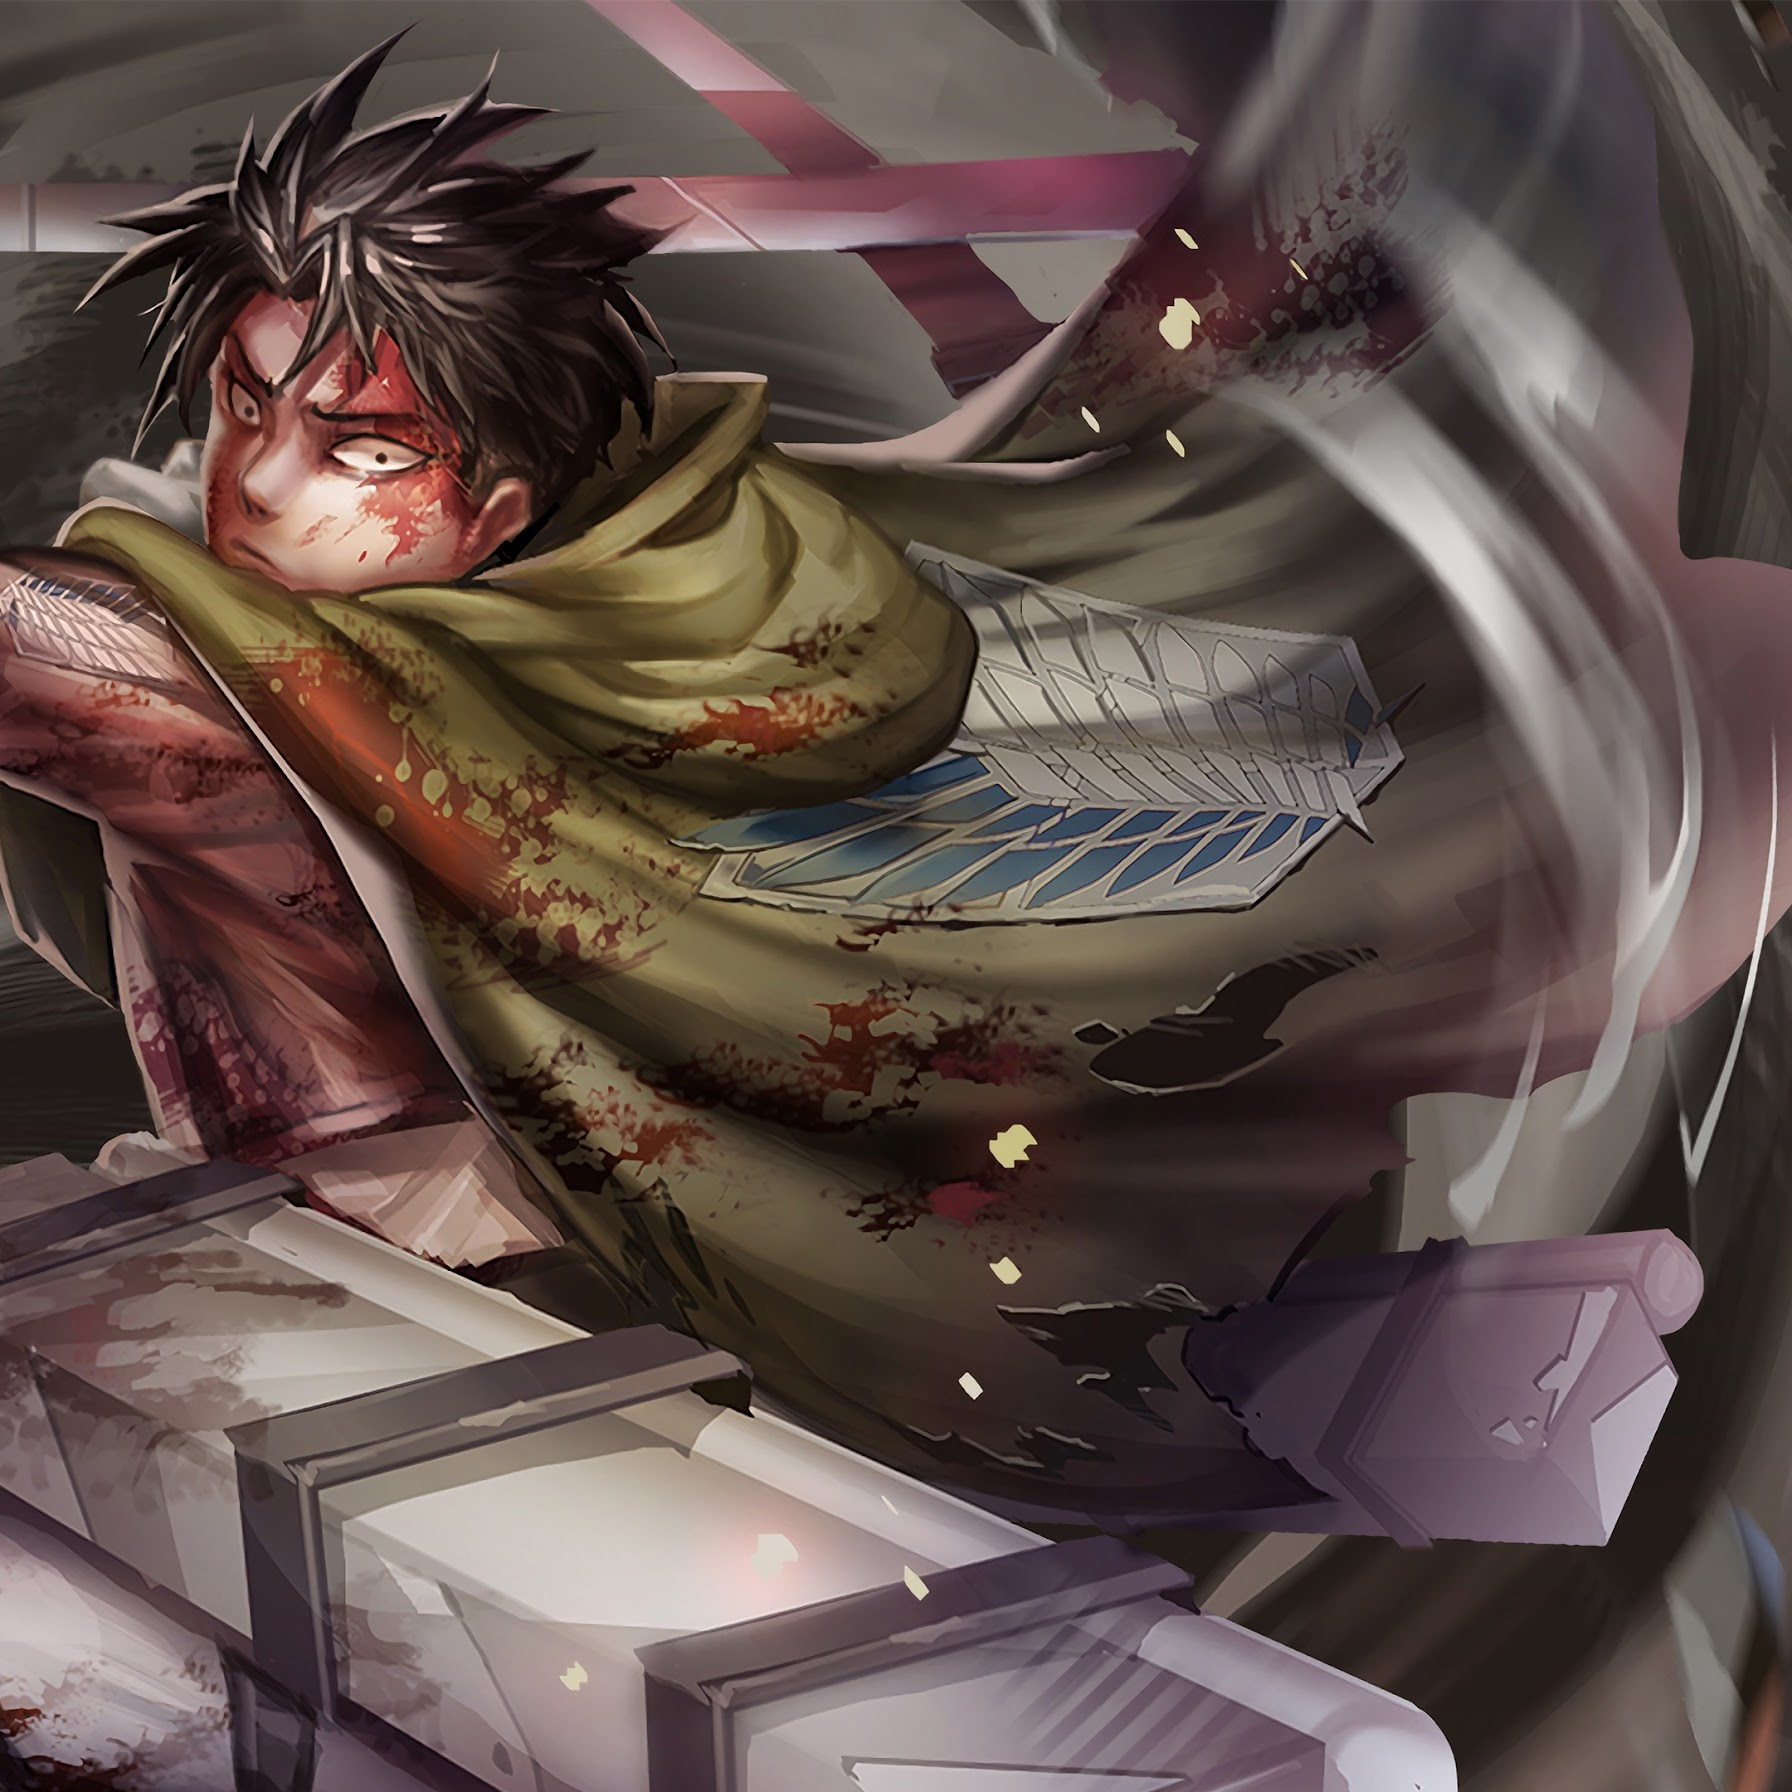 2019 · download 1242x2688 attack on titan eren yeager iphone xs max wallpaper, anime wallpapers, images, photos and background for desktop windows 10 macos,. Levi, Attack on Titan, 4K, #25 Wallpaper